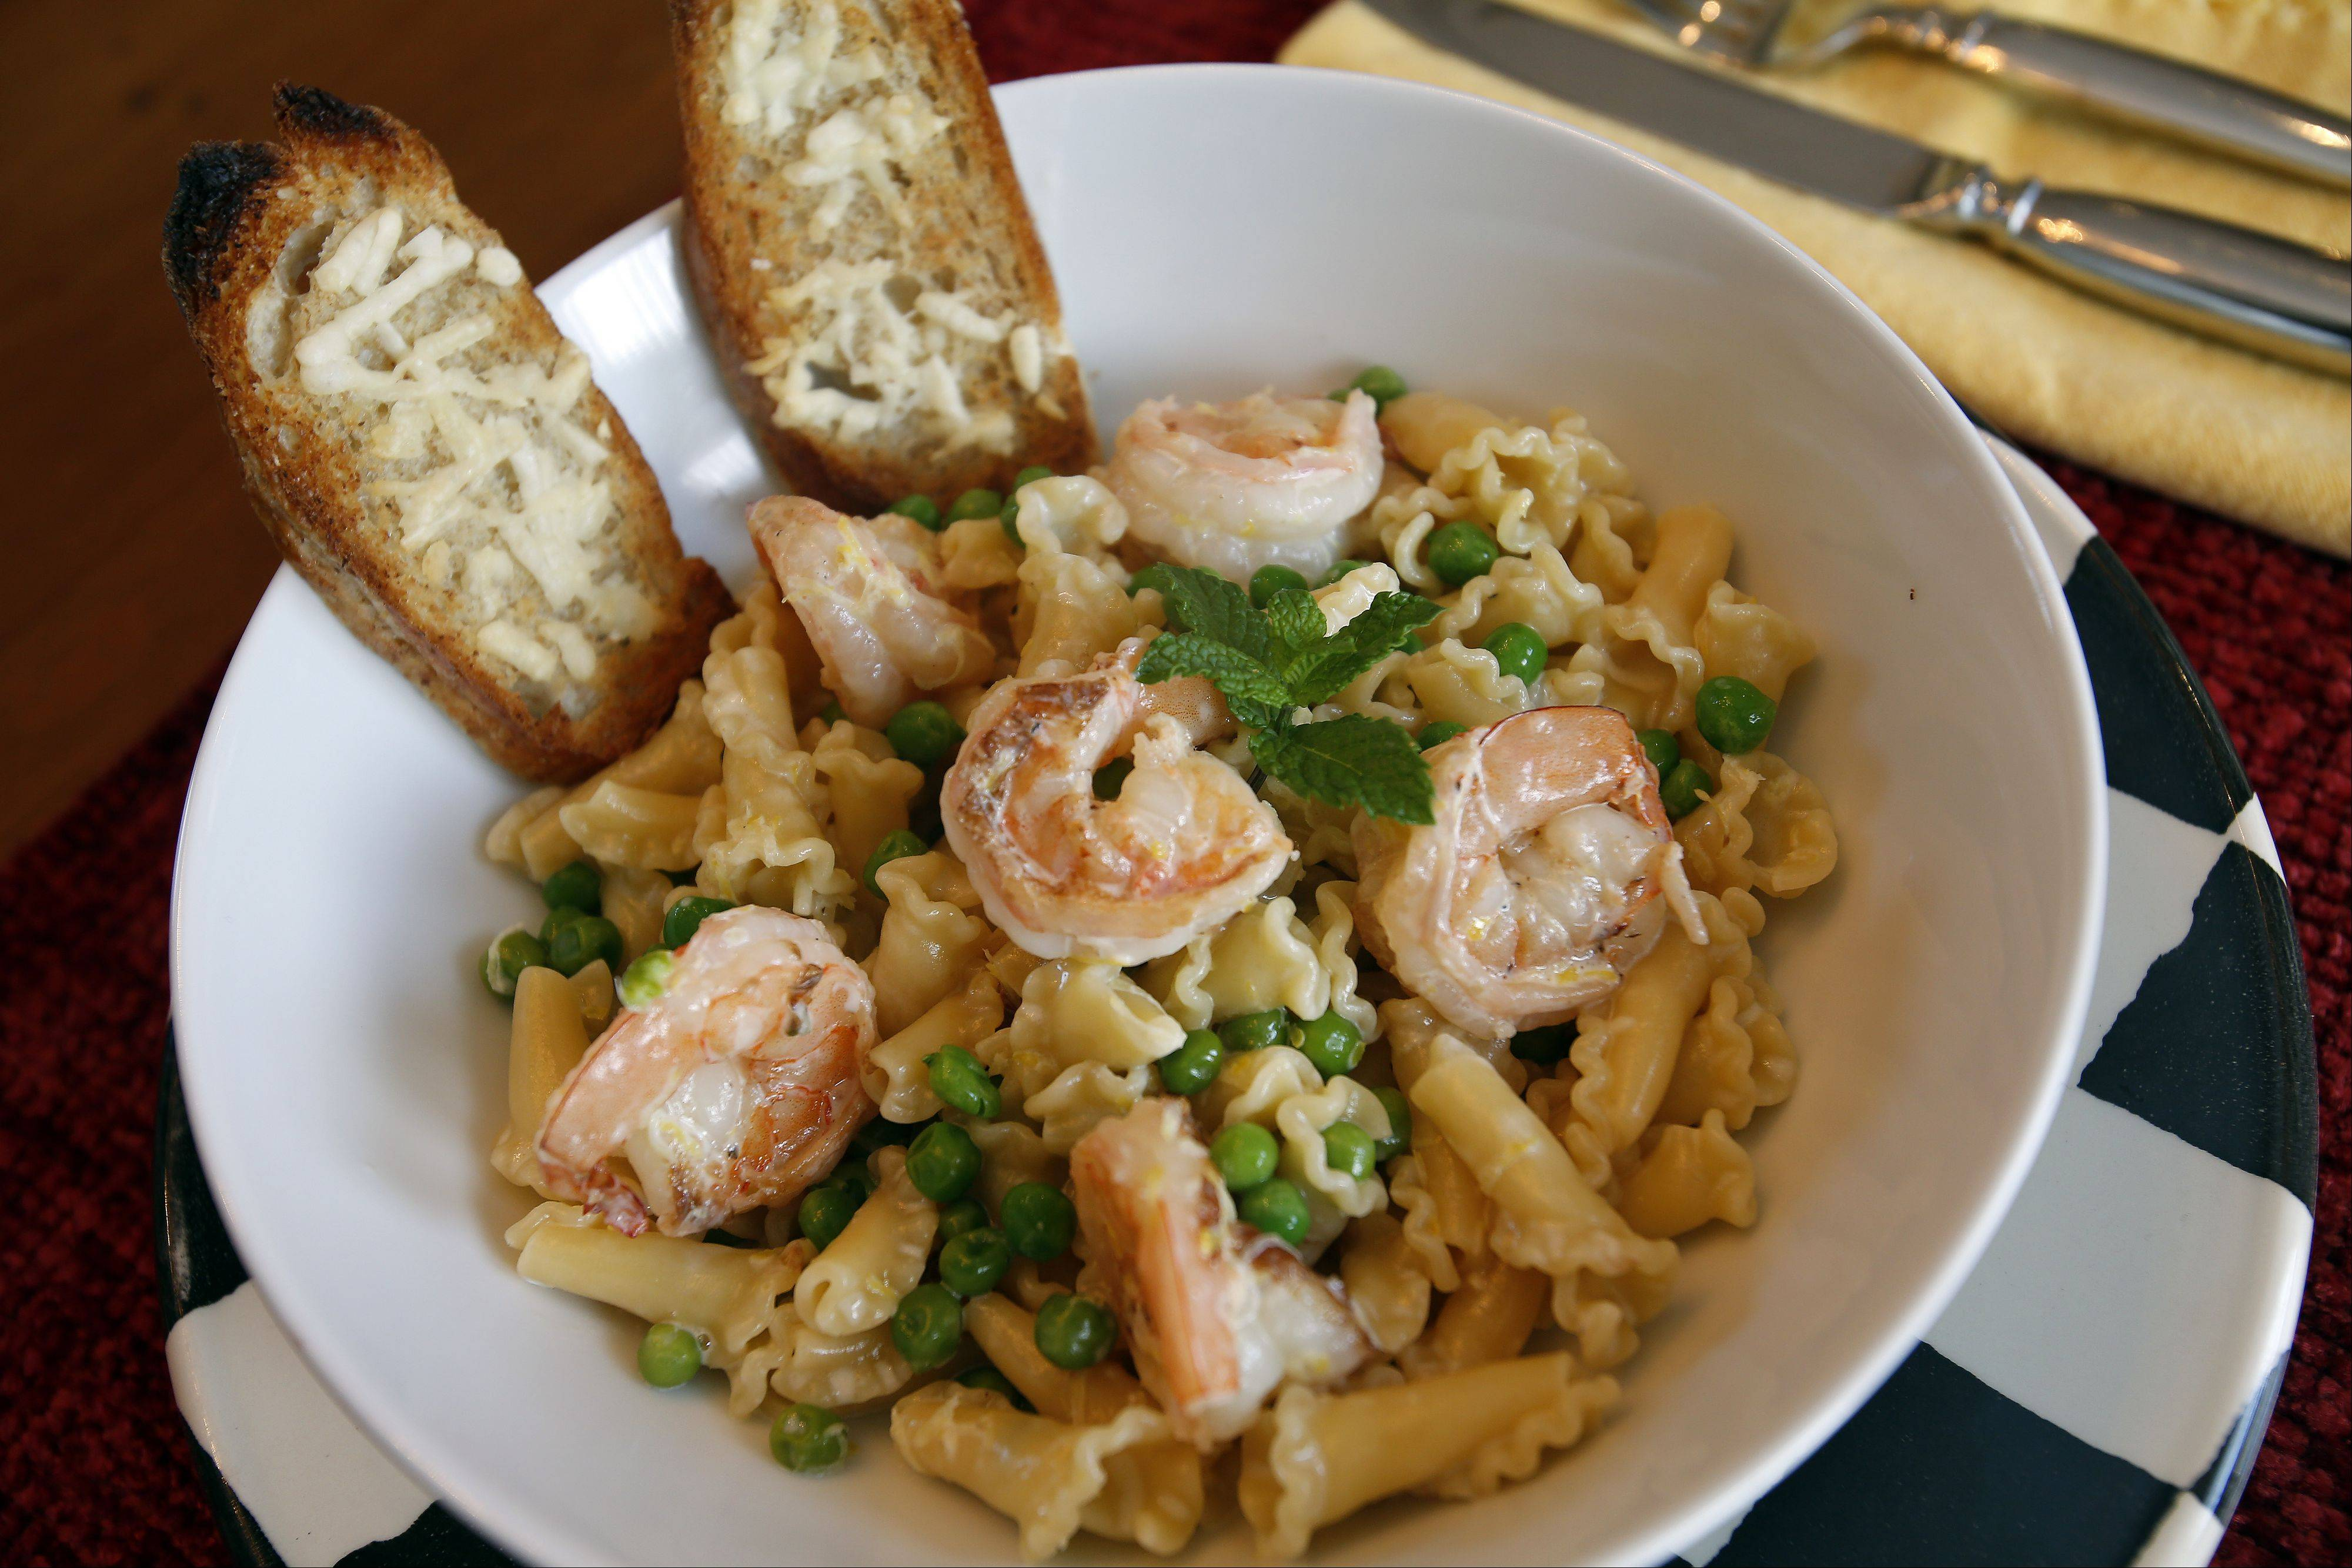 Mike Baron of South Elgin created pasta with cream sauce and shrimp meal with frozen peas for the Cook of the Week Challenge budget dinner challenge.